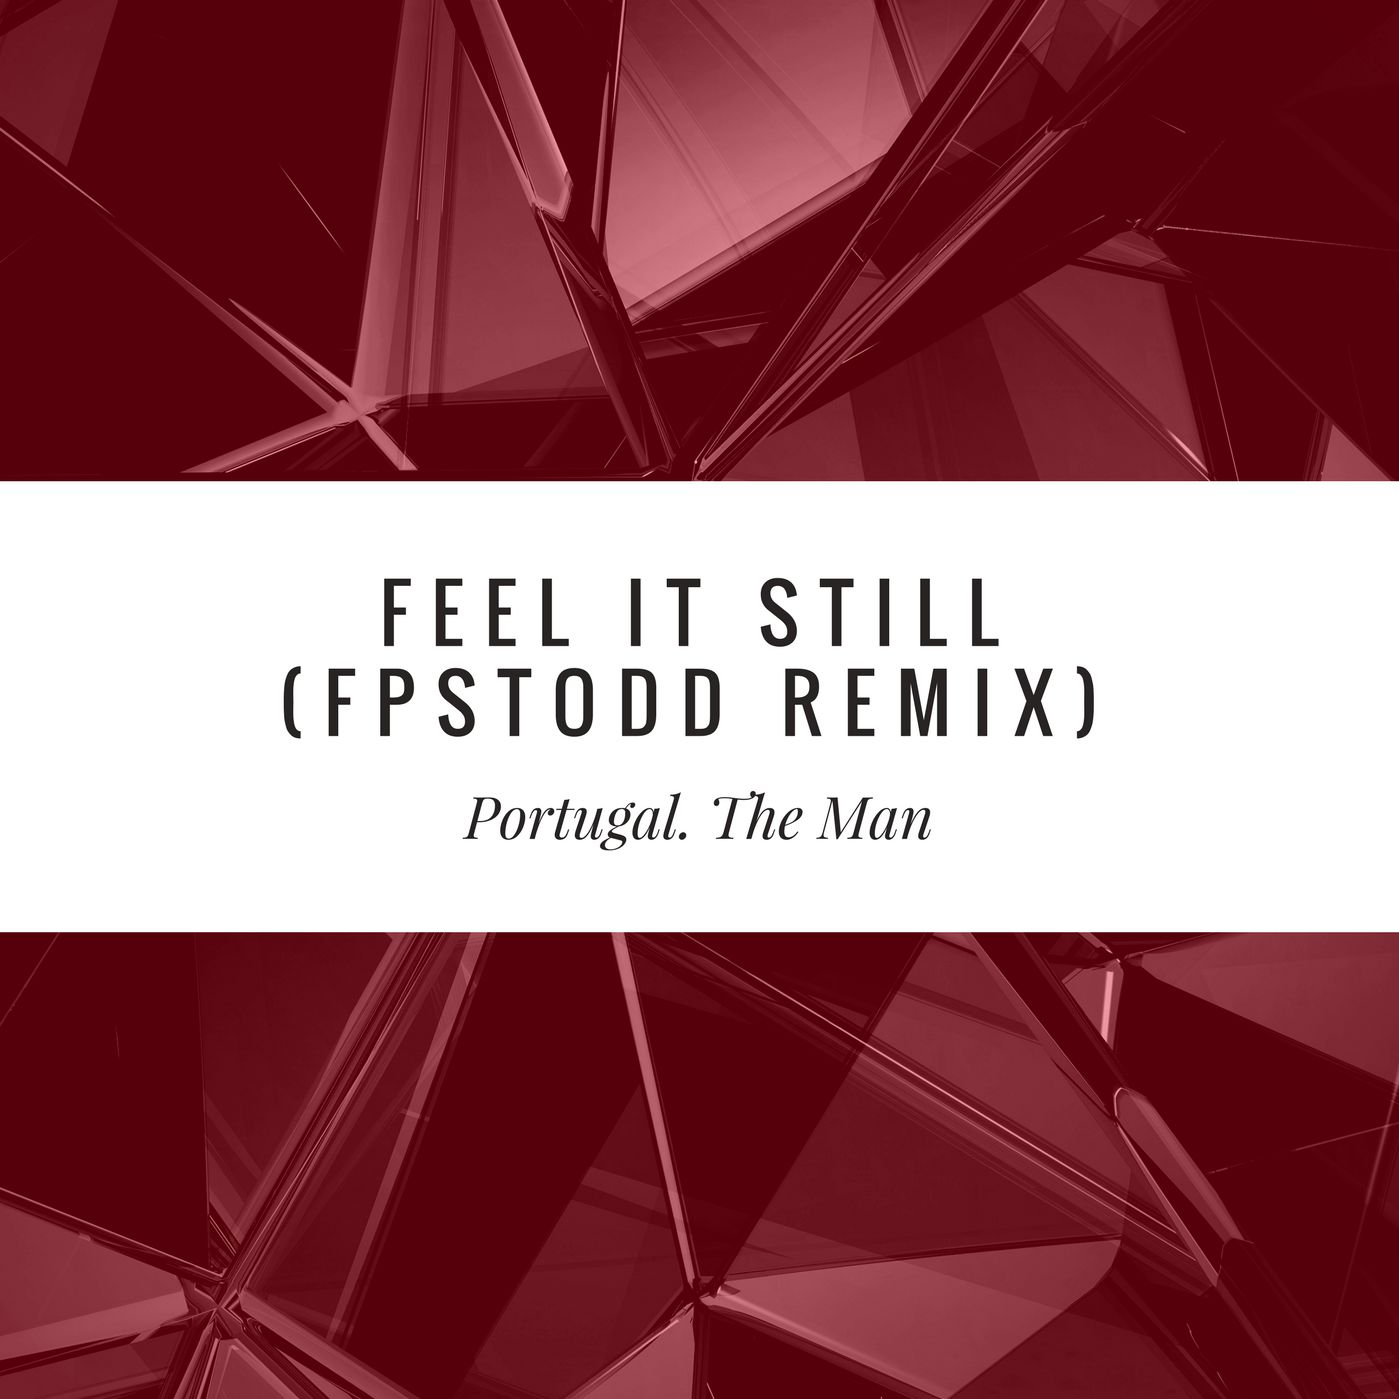 Portugal. The Man - Feel It Still (FPSTodd Remix)